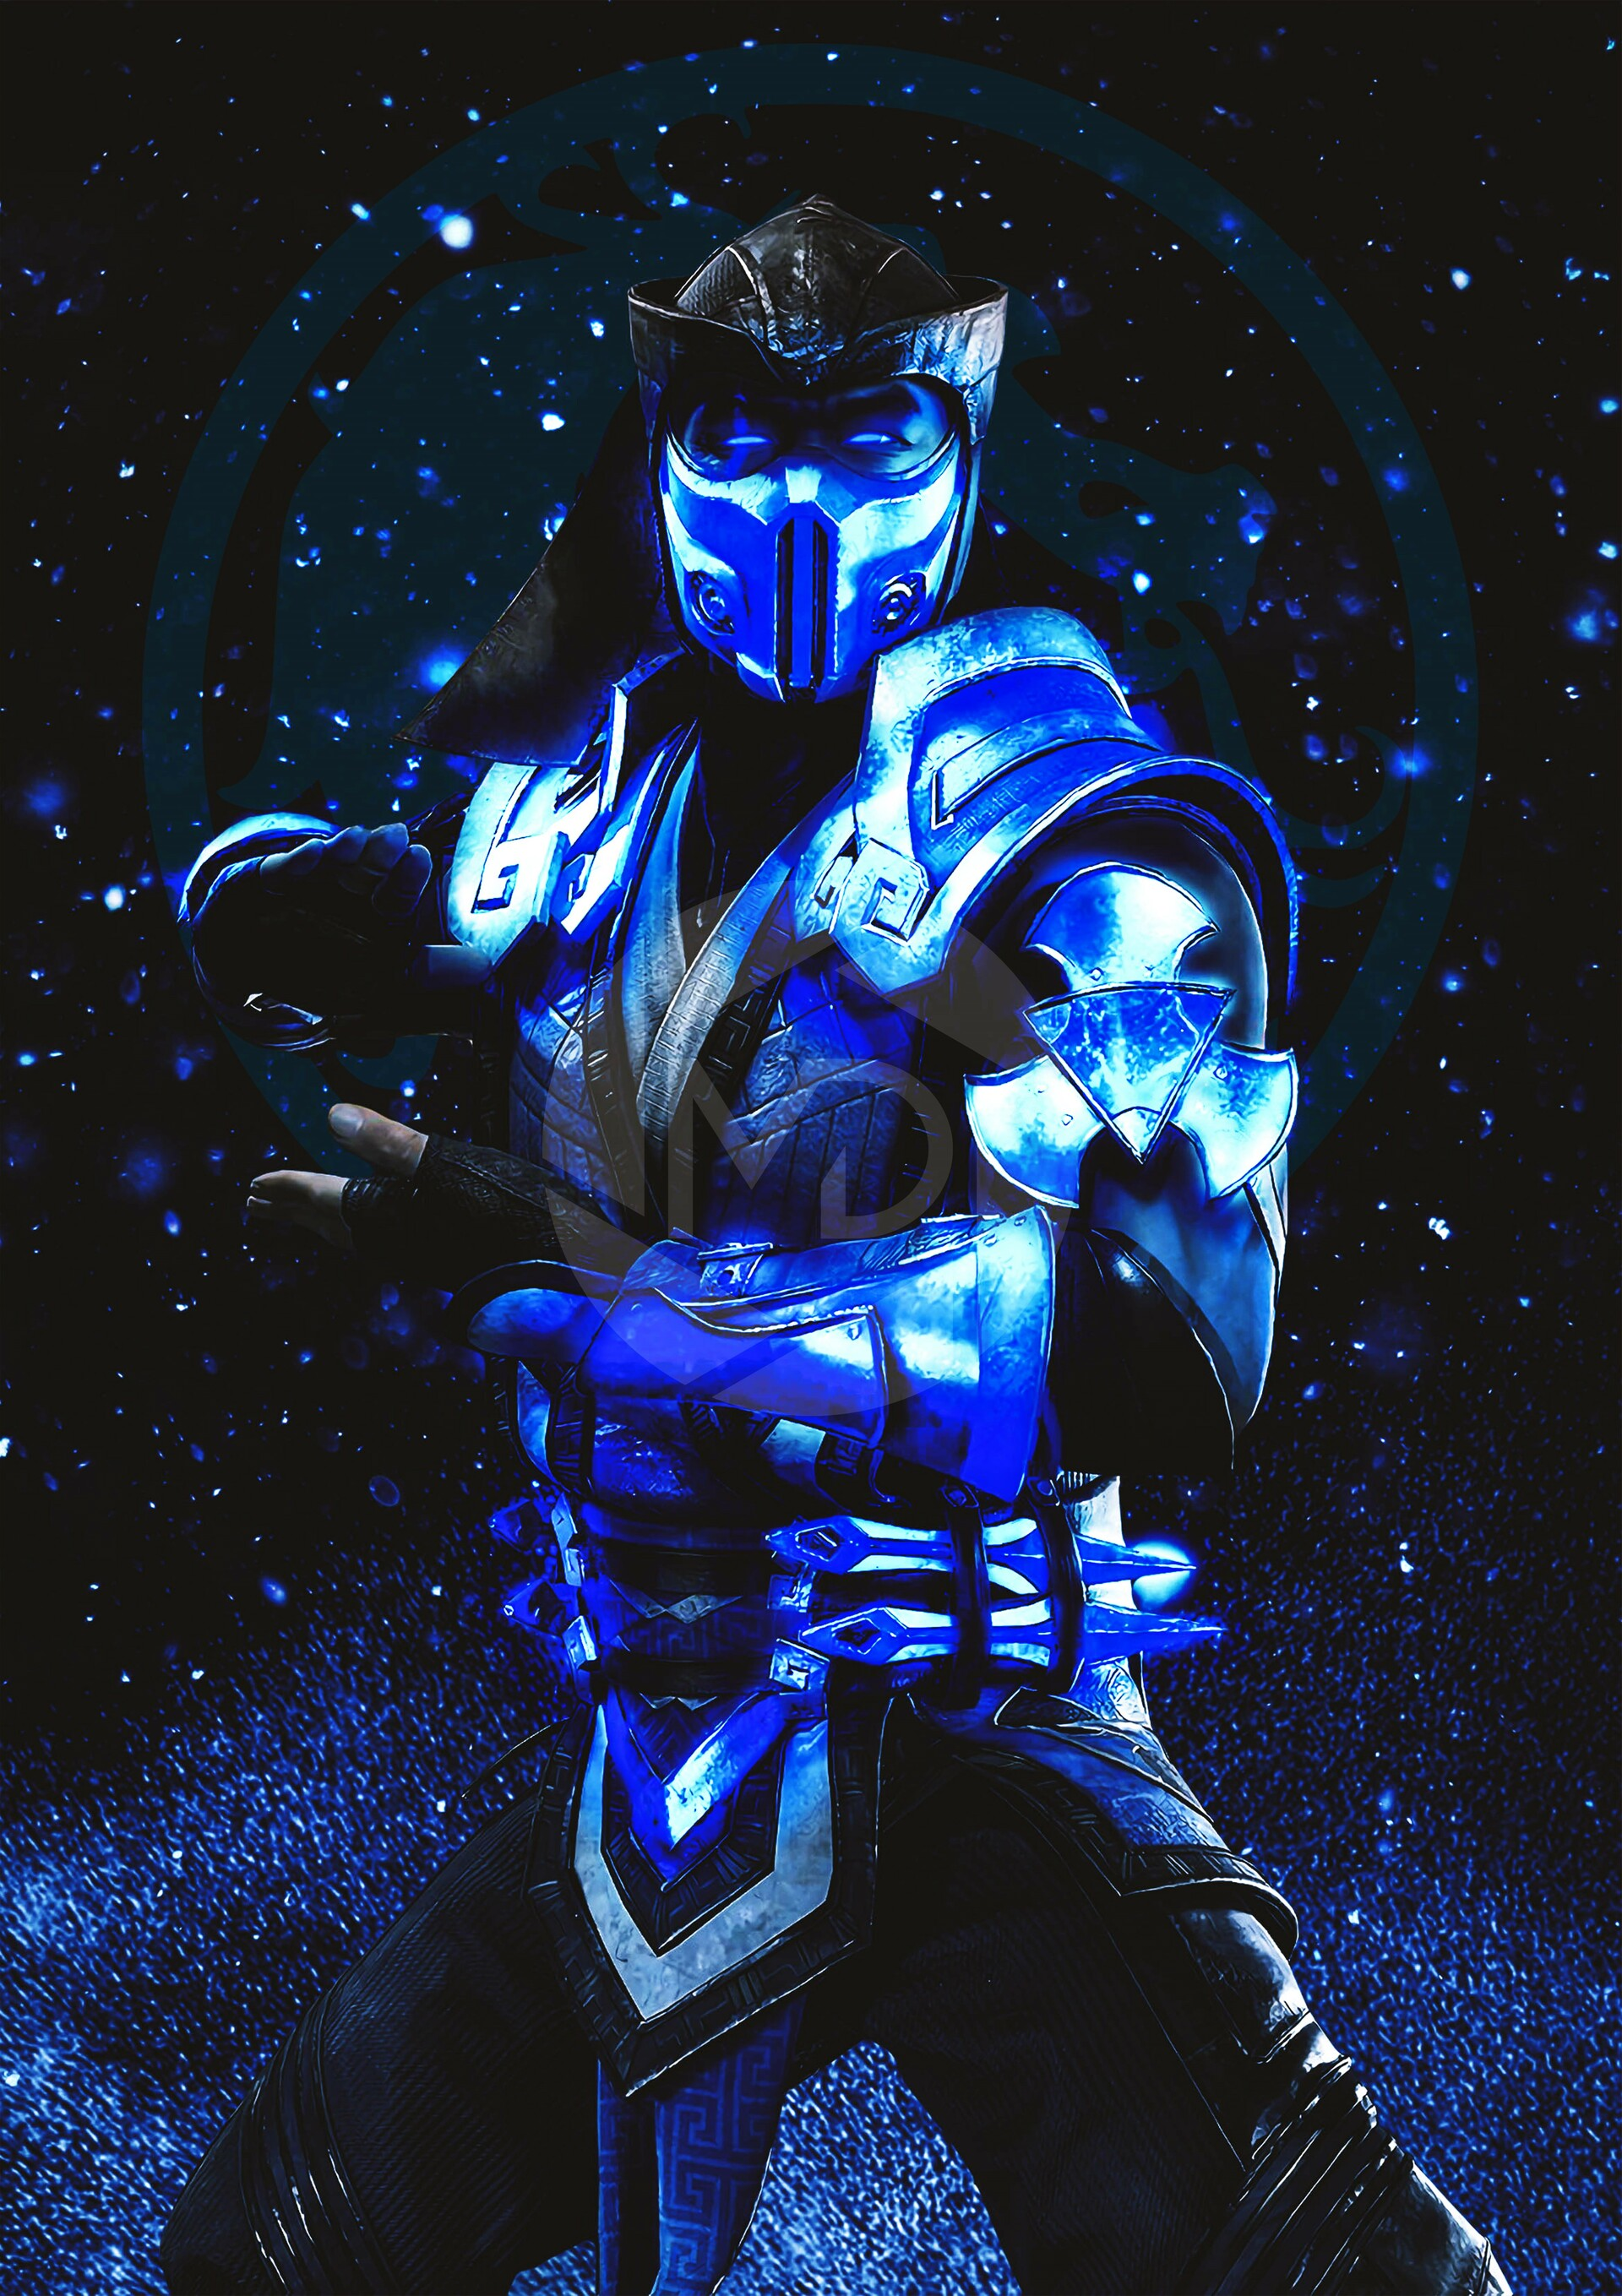 Mdesign Digital Artwork Mortal Kombat 11 Sub Zero